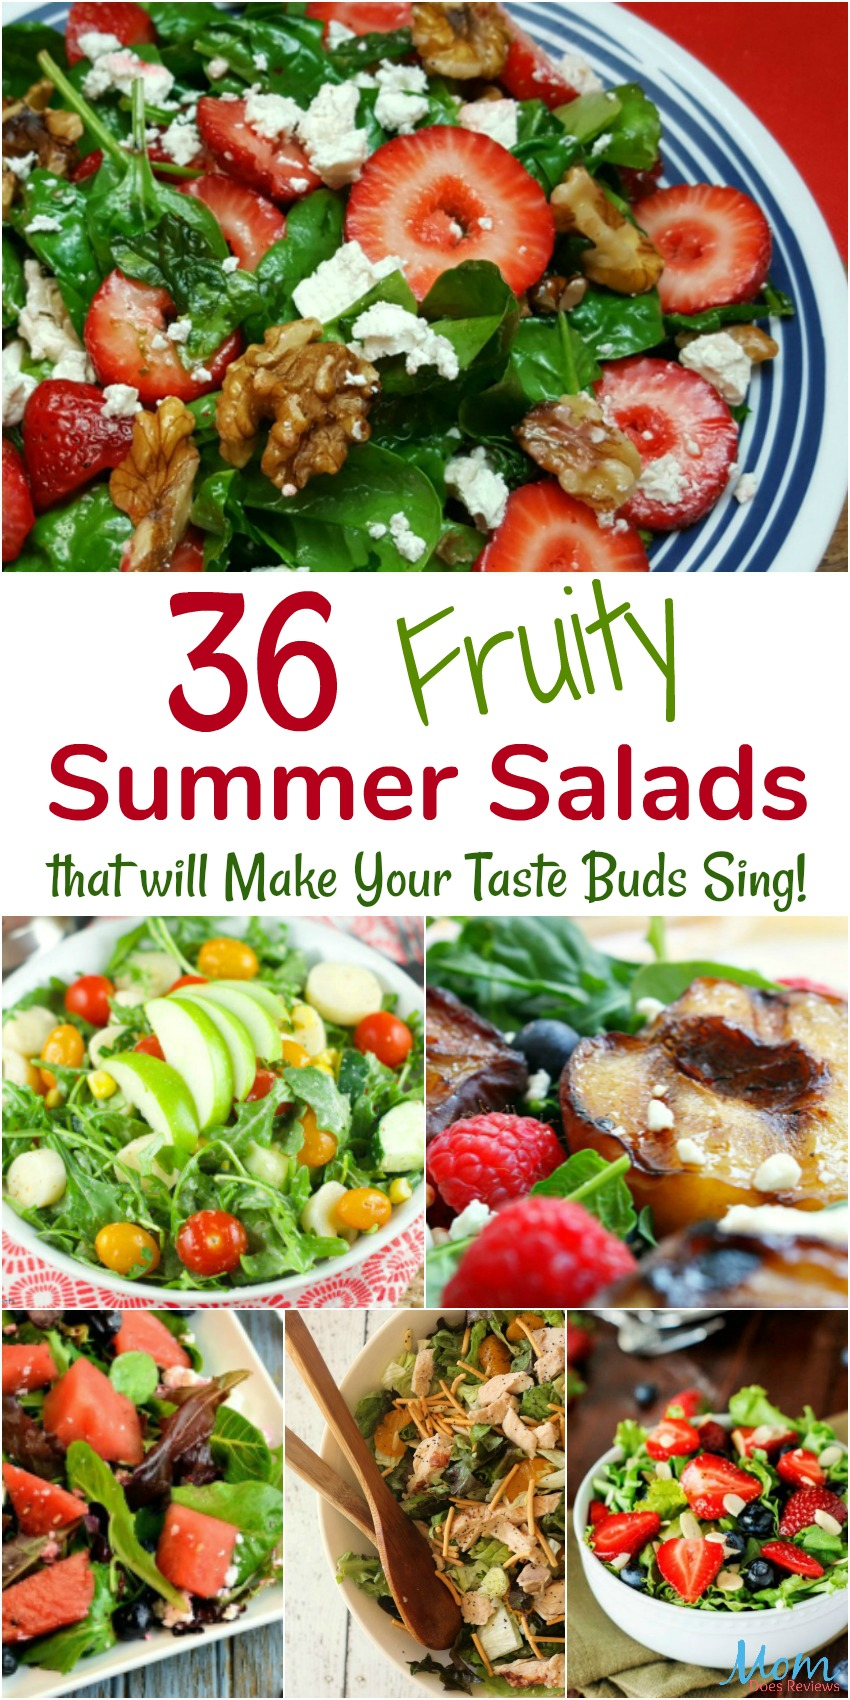 36 Fruity Summer Salads that will Make Your Taste Buds Sing